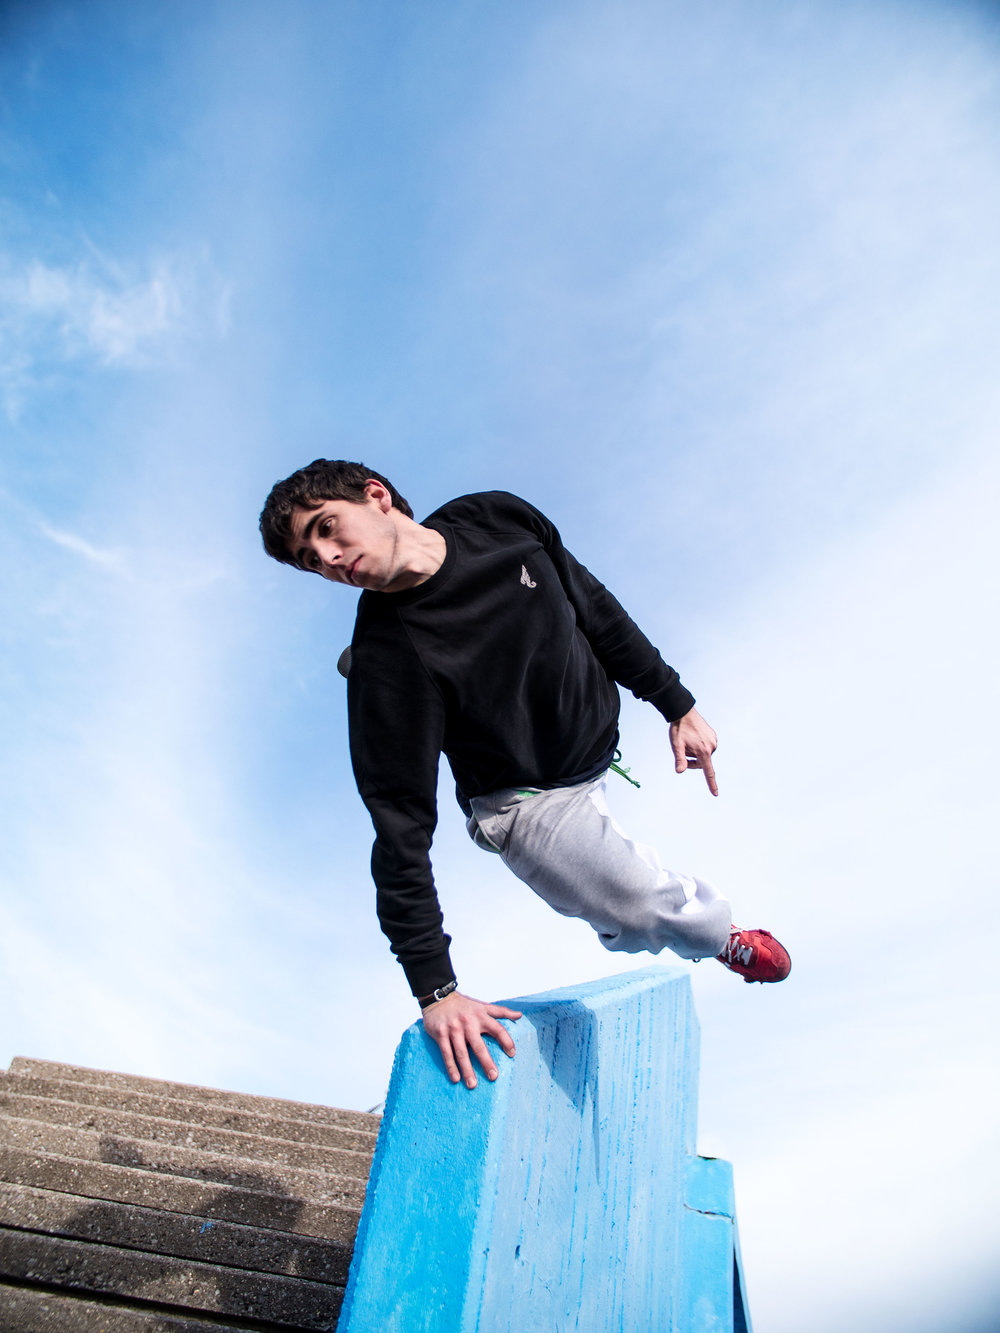 Jesse-Danger-Skochypstiks-Parkour-Freerunning-New-York-NYC-NY-Brooklyn-Vanguard-Steve-Zavitz